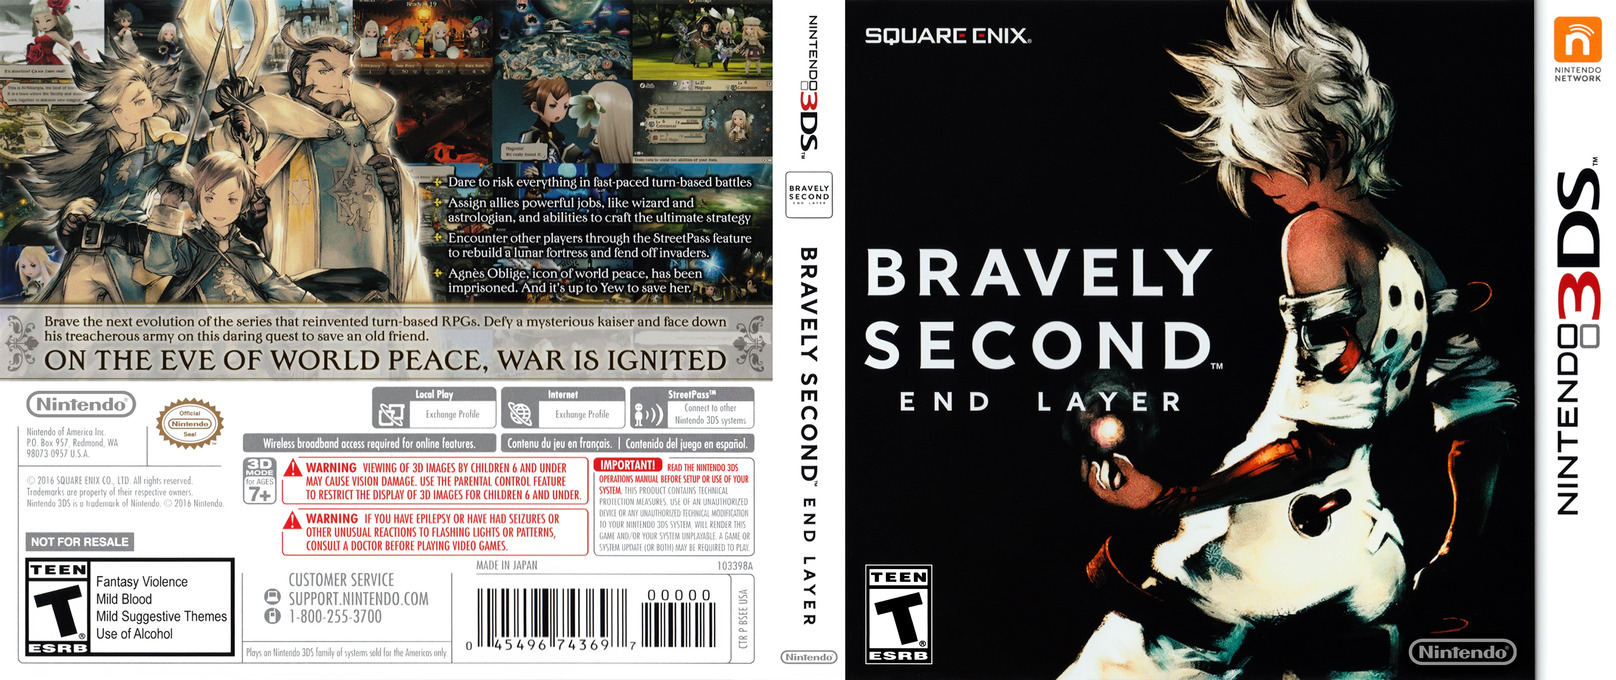 Bravely Second: End Layer 3DS coverfullHQ (BSEE)